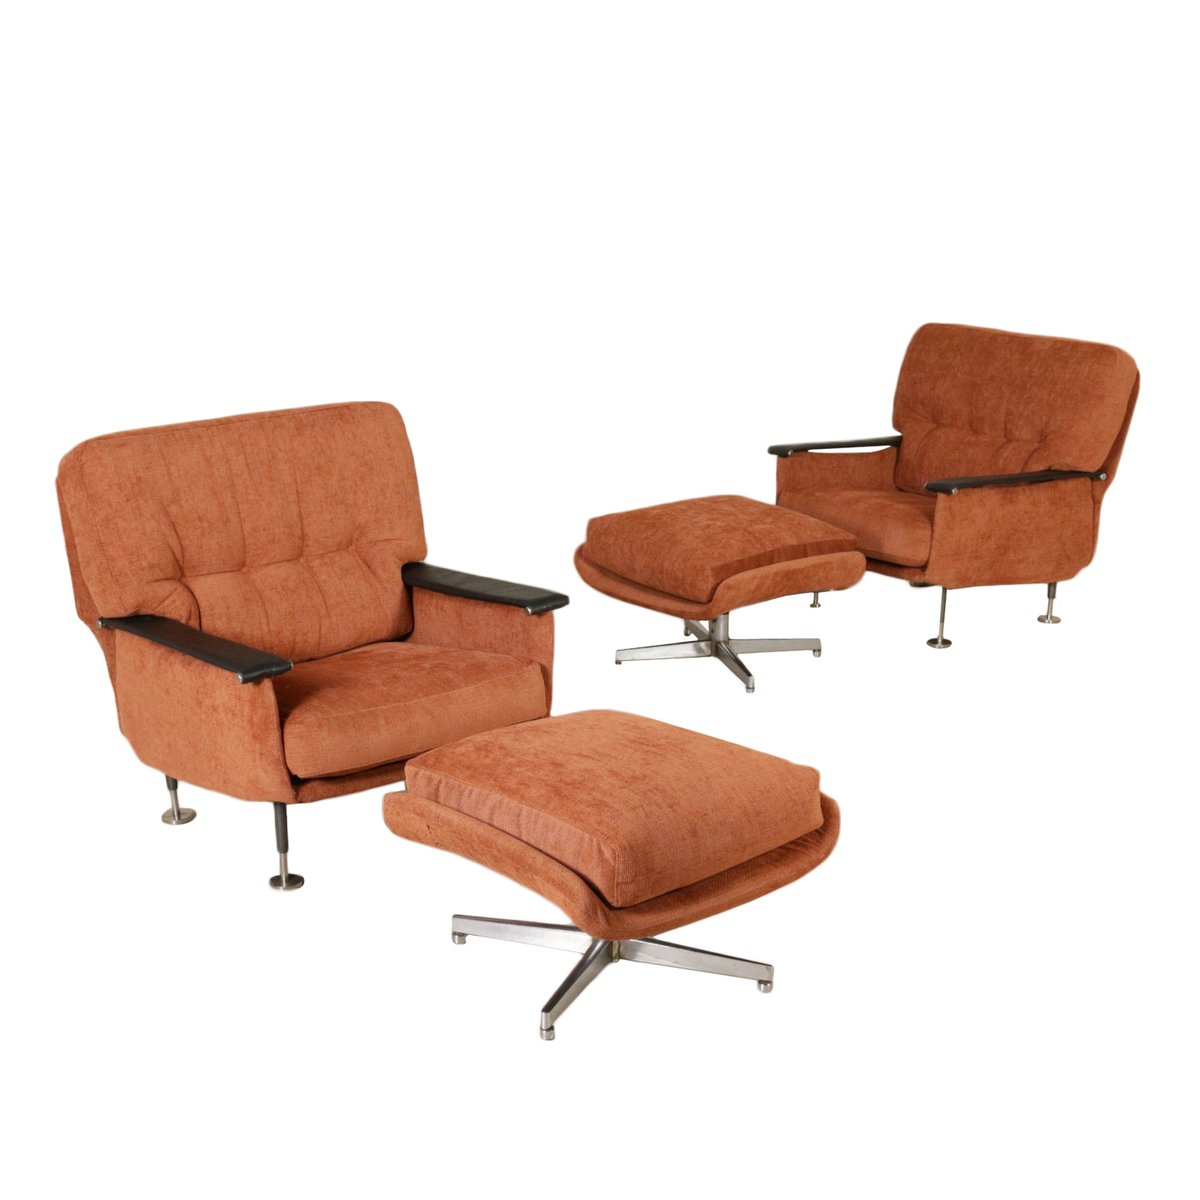 Italian Armchairs With Footstools, 1960s, Set Of 2